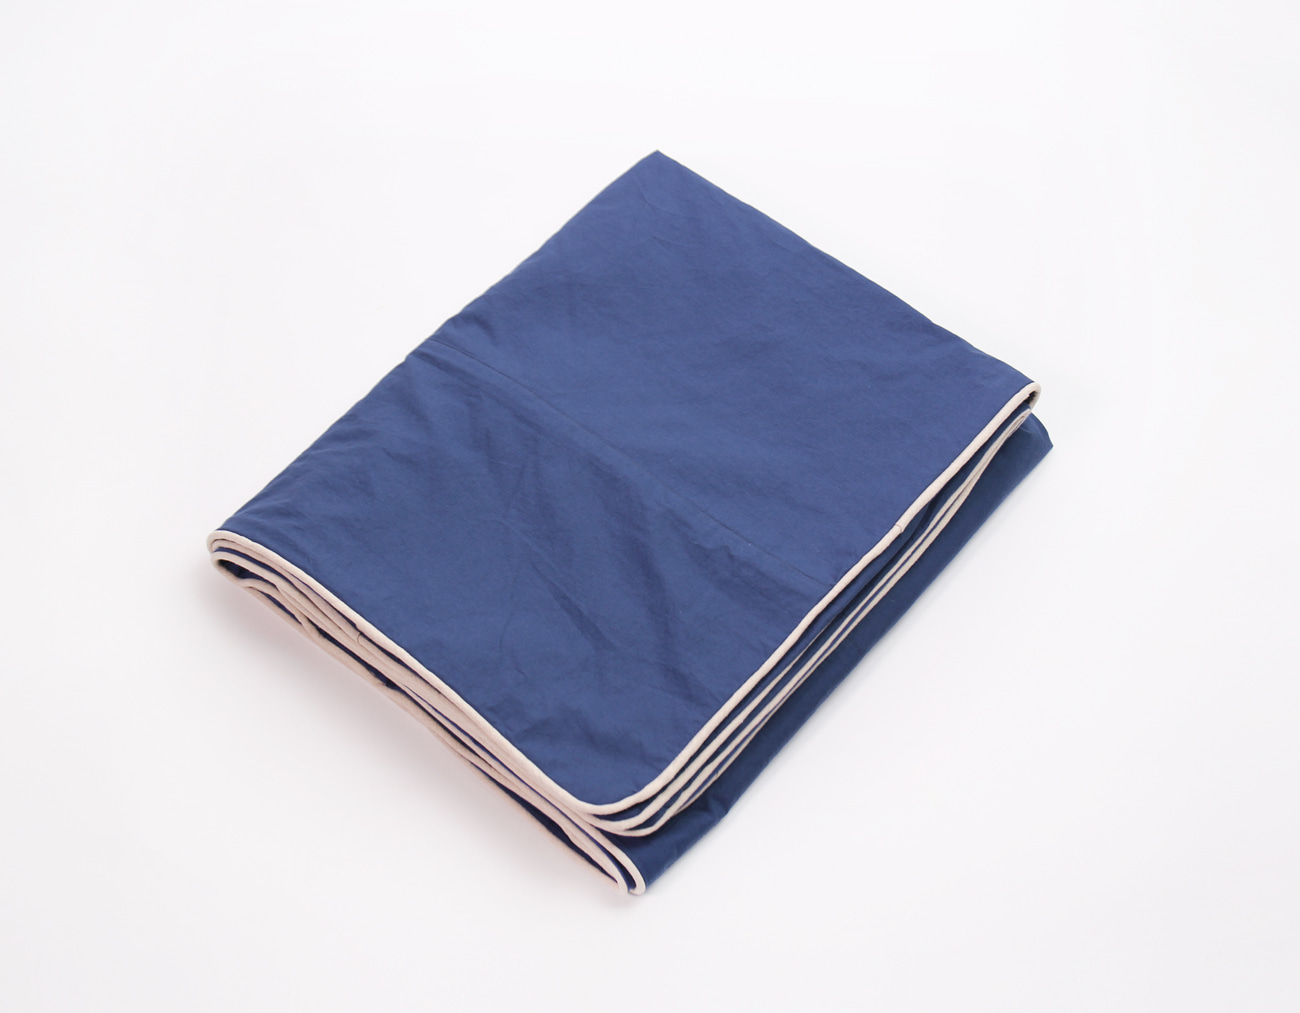 WASHING COTTON DUVET COVER - BLUE/NATURAL